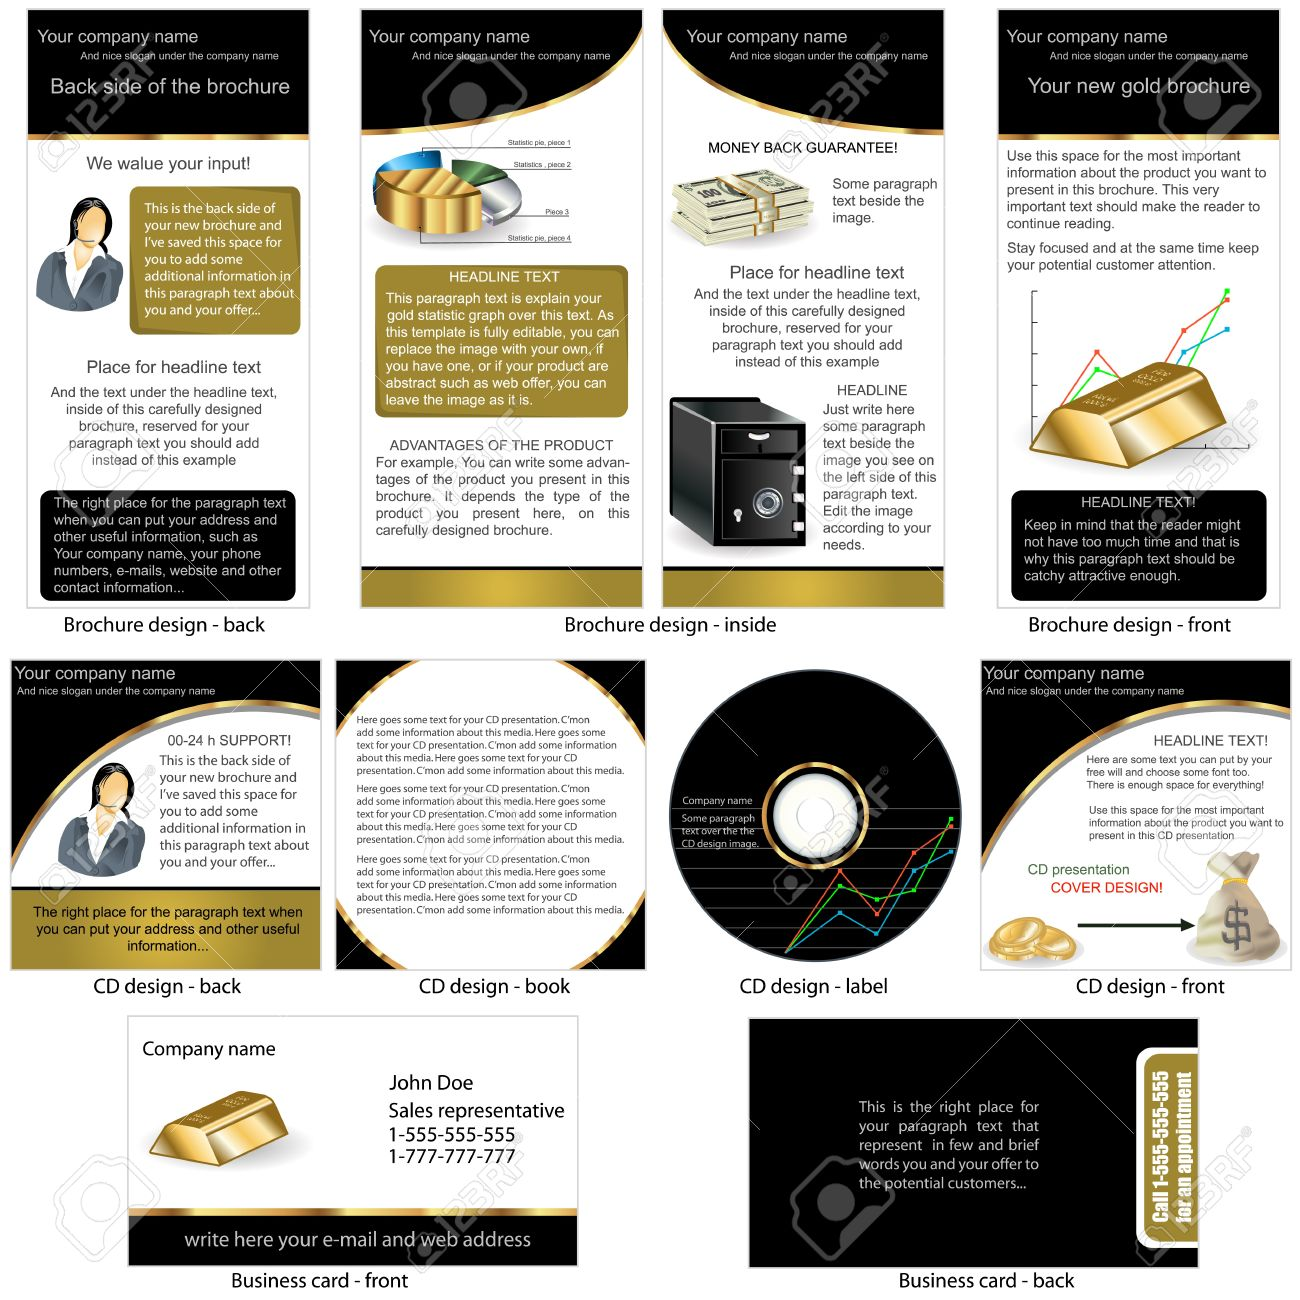 Gold Stationary - Brochure Design, CD Cover Design And Business ...